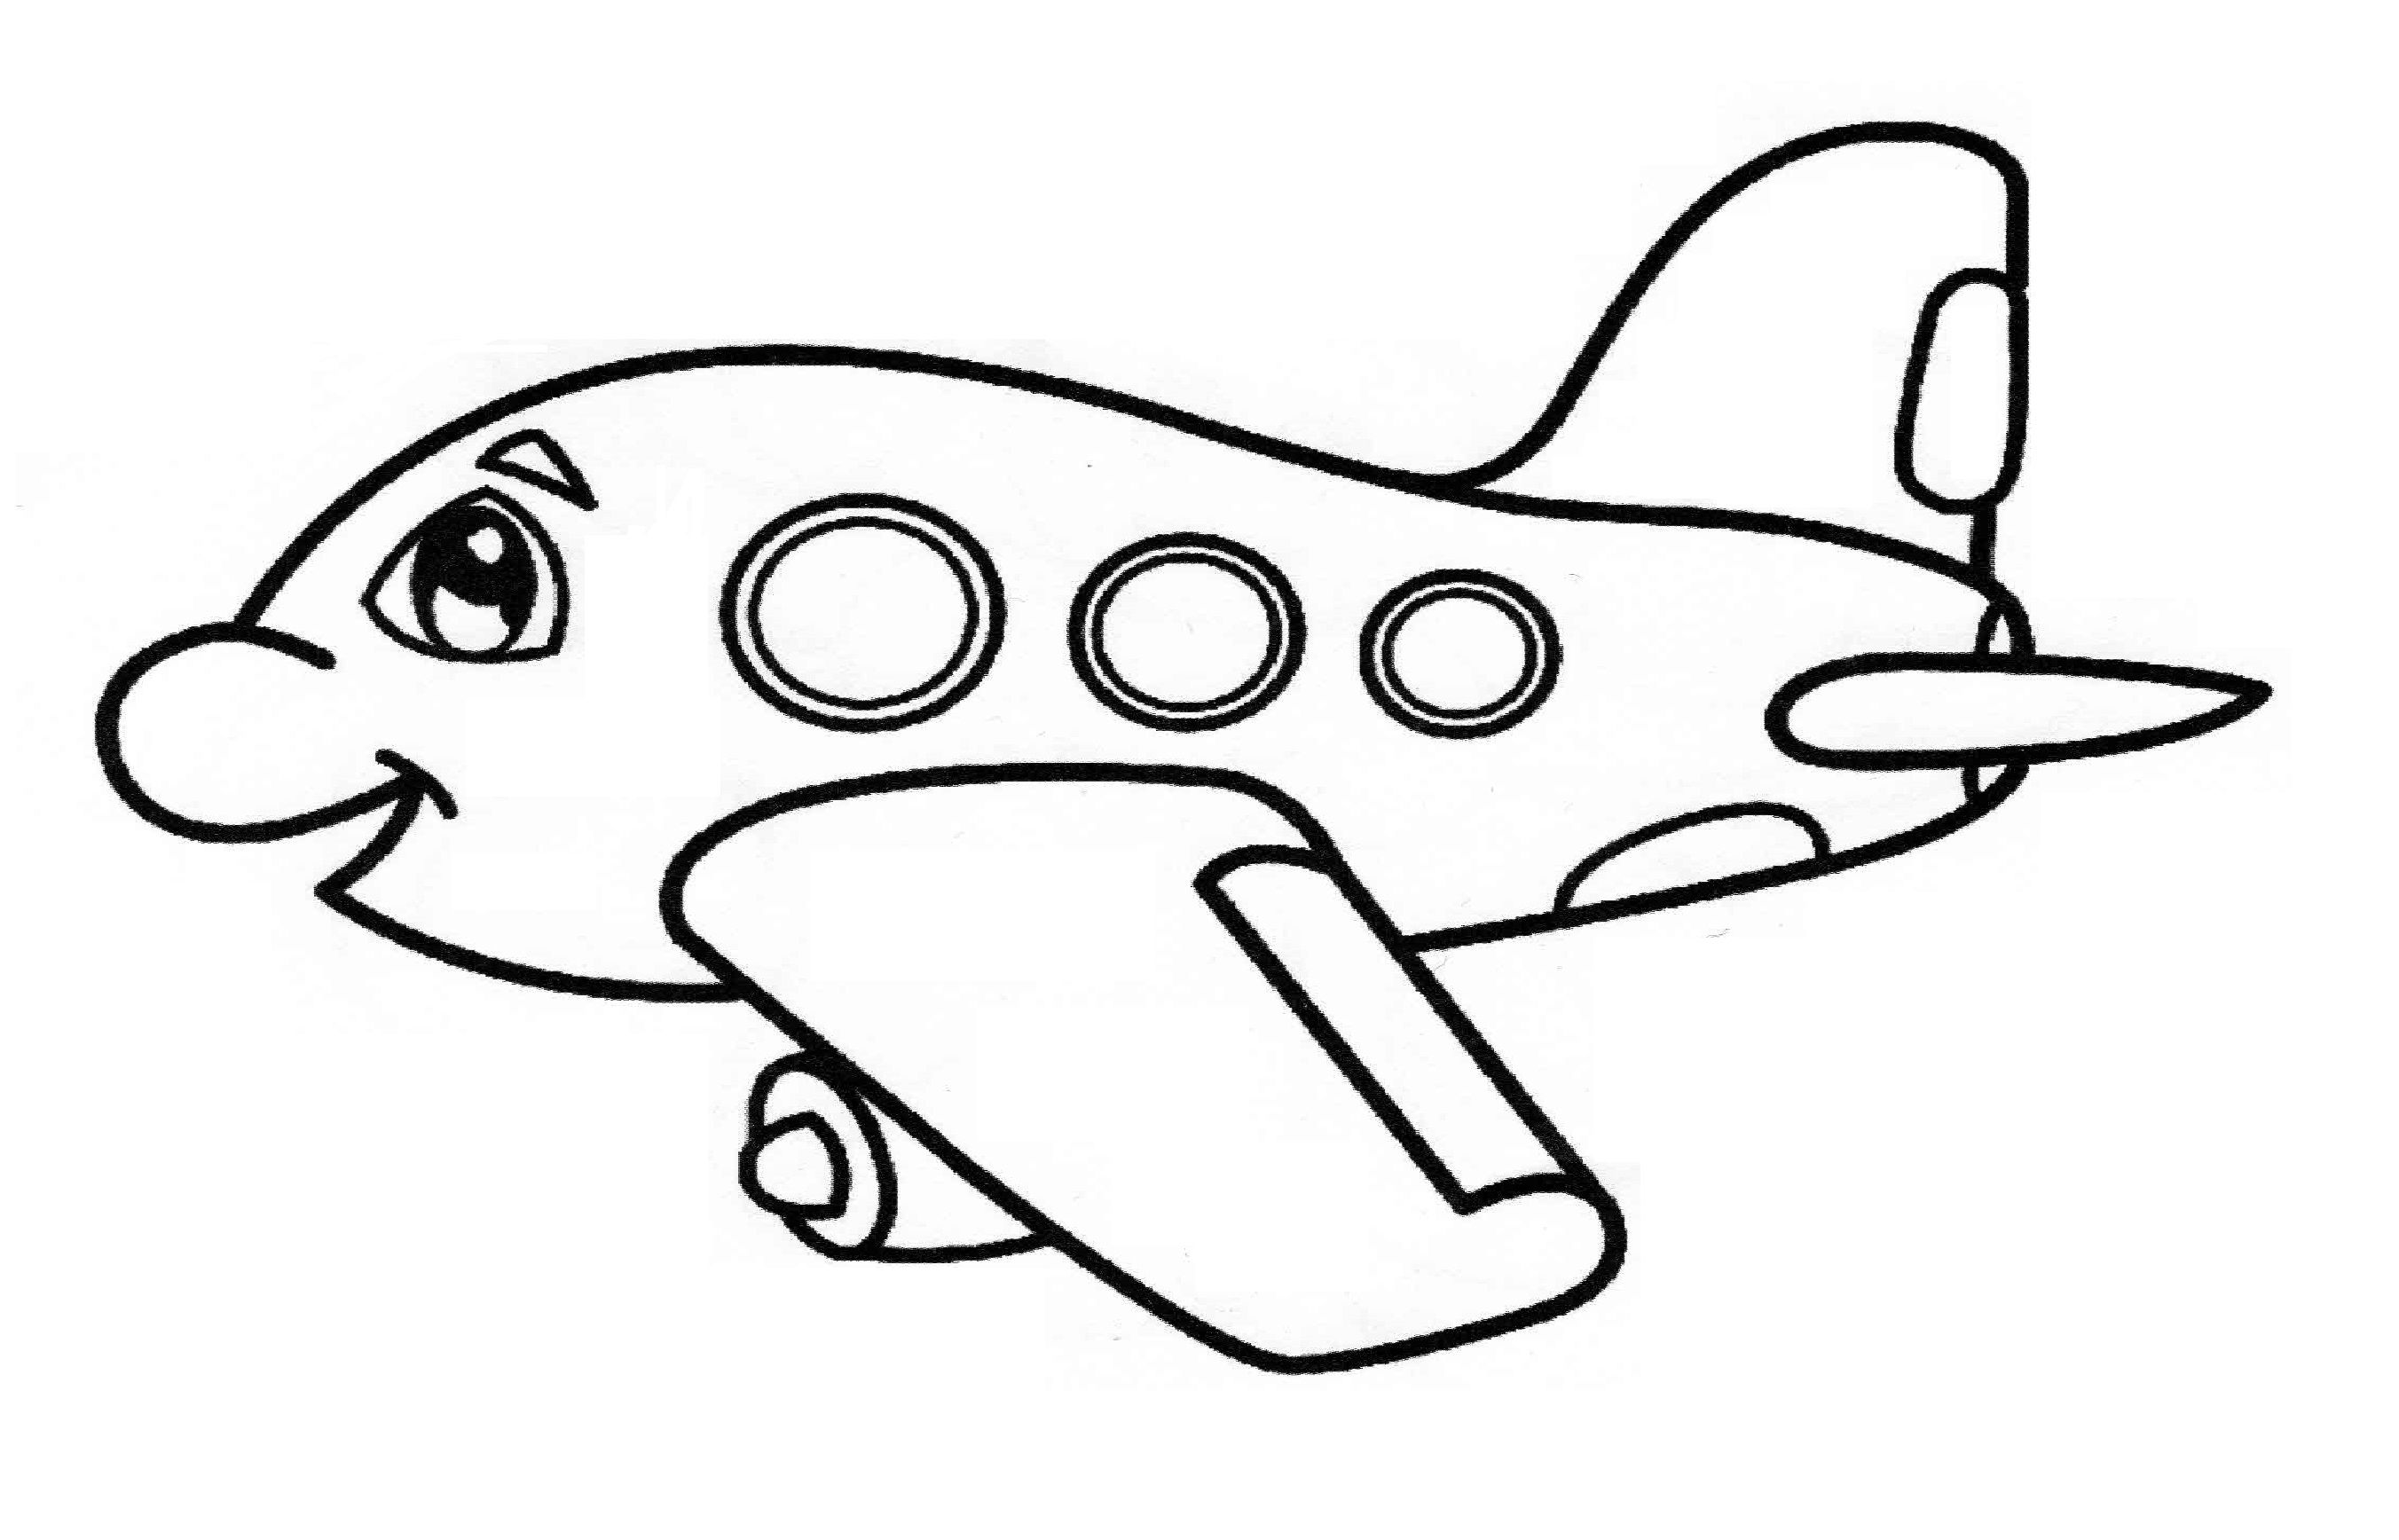 Airplane Coloring Page For Preschool And Kindergarten Preschool And Kindergarten Airplane Coloring Pages Preschool Coloring Pages Hello Kitty Colouring Pages